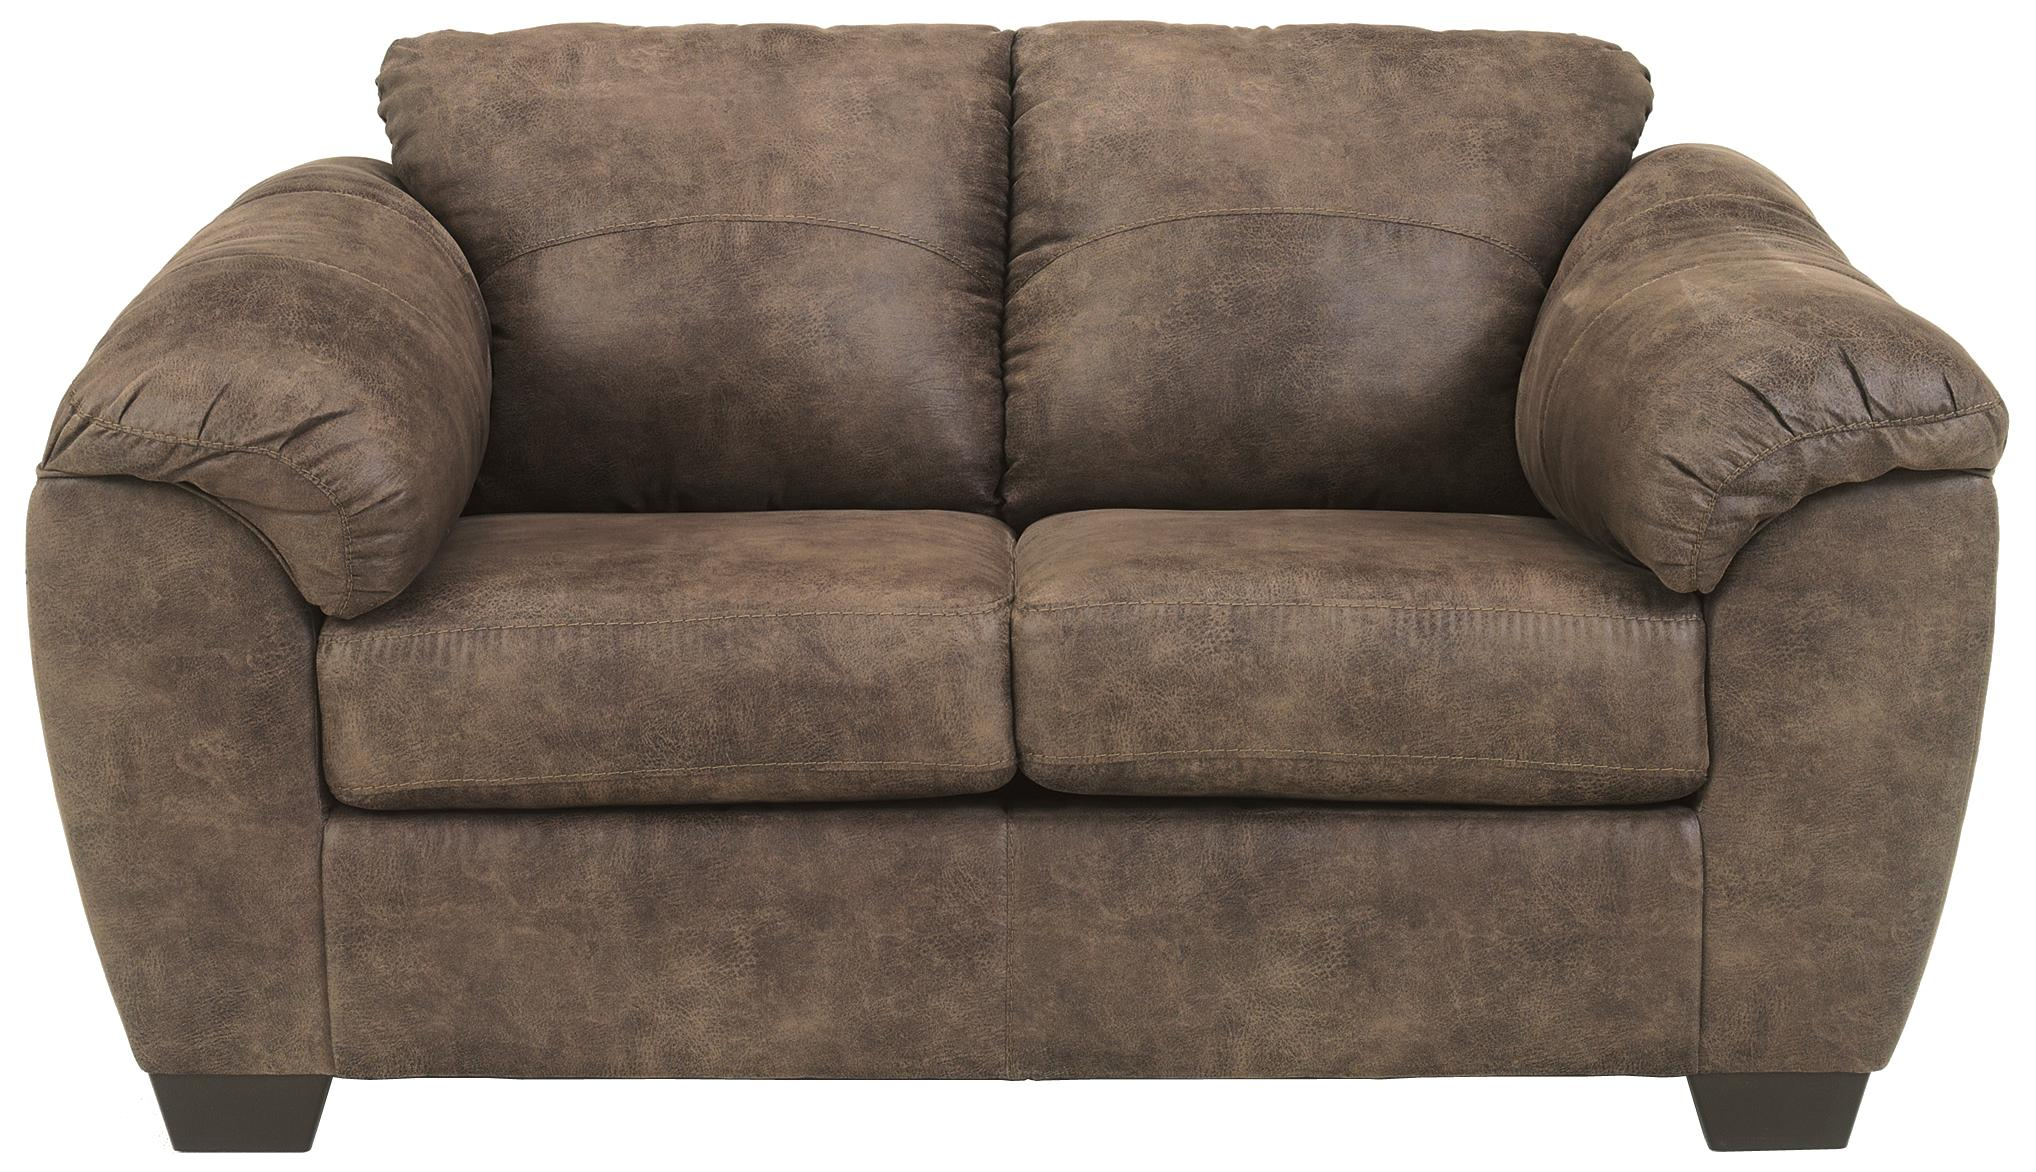 Jathan - Mocha Loveseat by Signature Design by Ashley at Turk Furniture